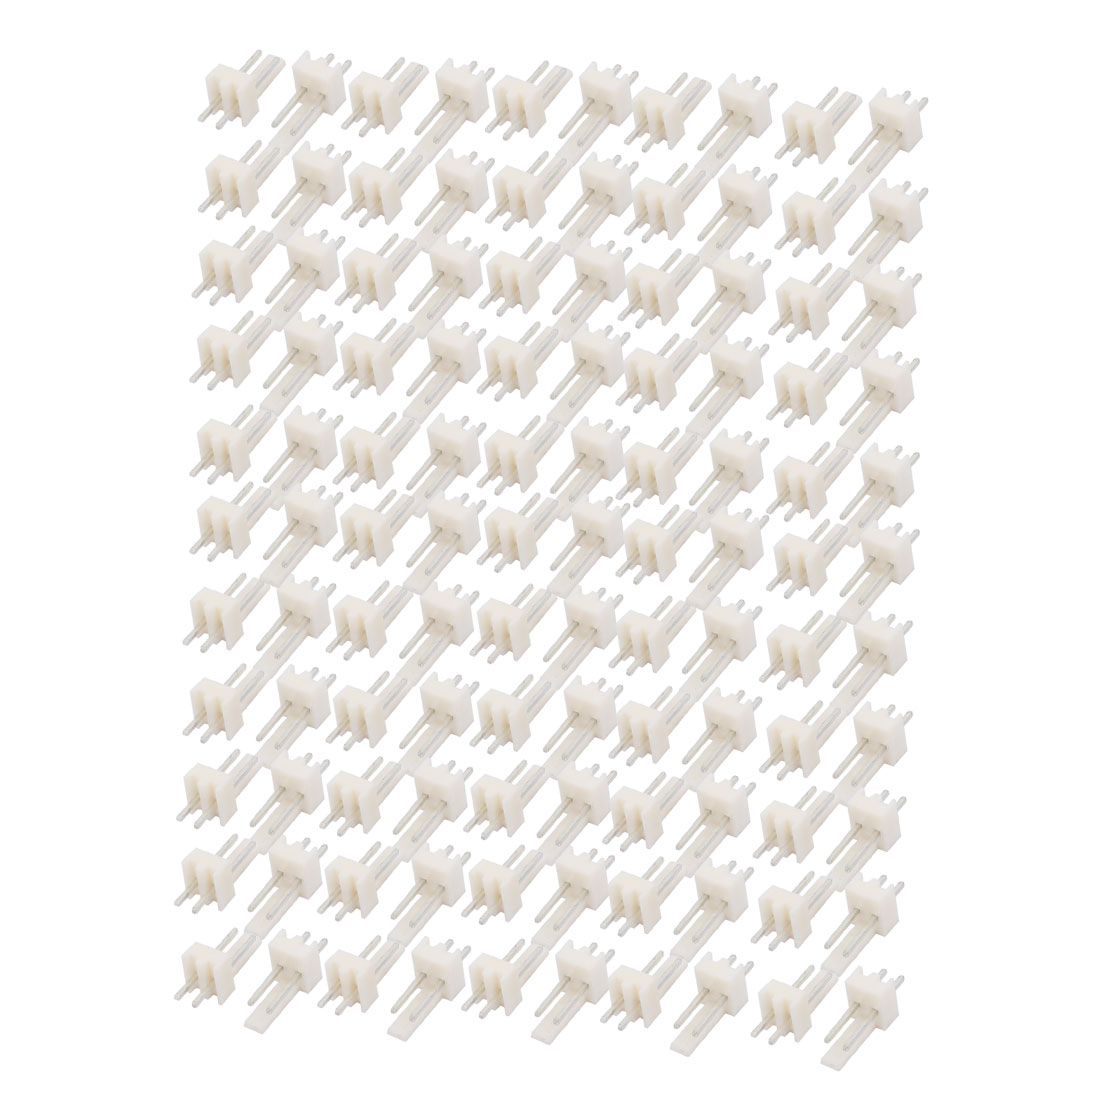 110Pcs 1.65mm Pitch Single Row 2P Docking Connector Plastic Shell White